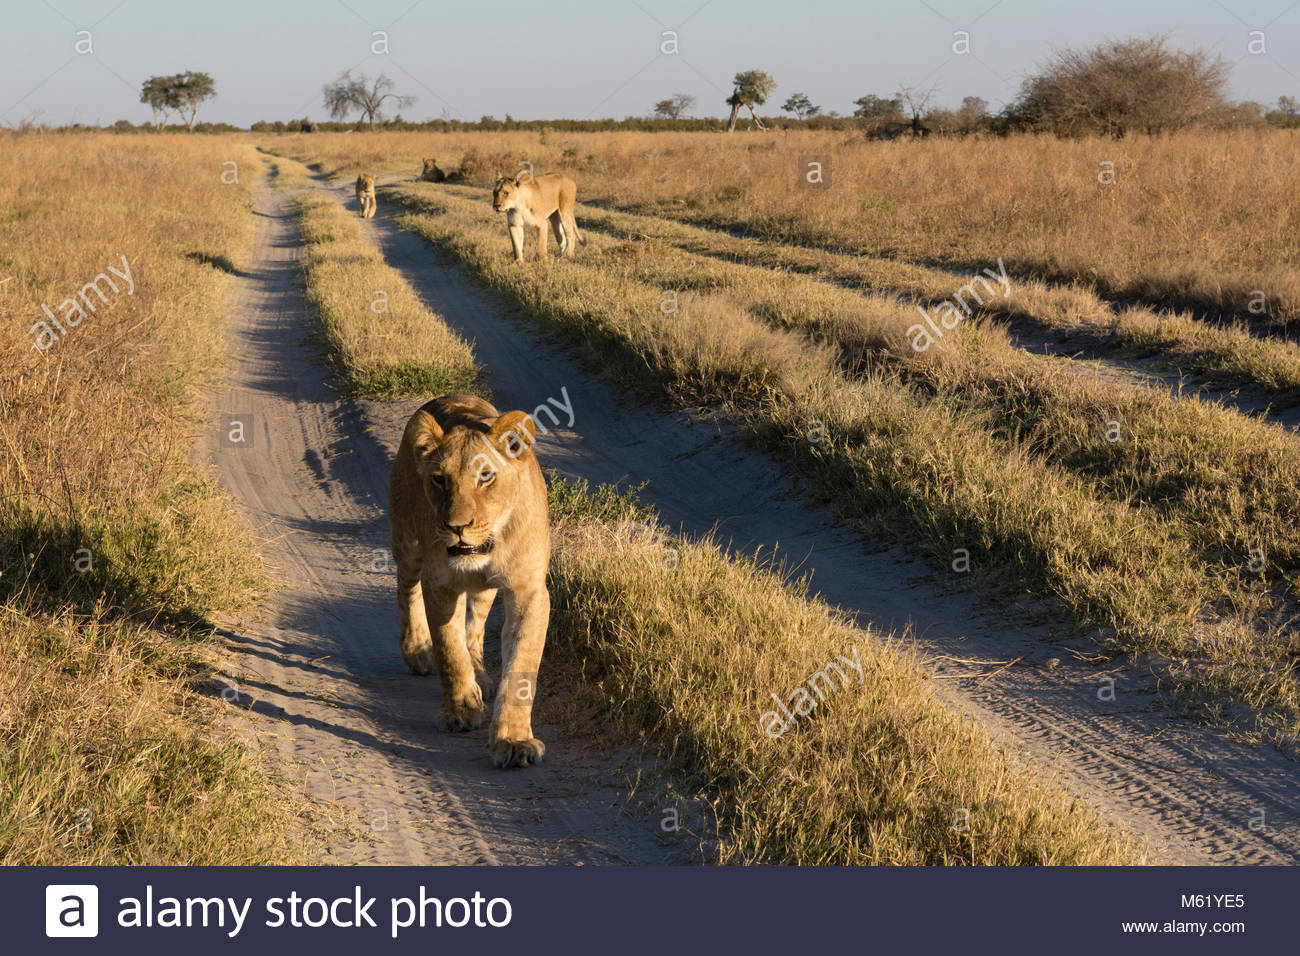 A close view of the lions, Panthera leo, from the Marsh Pride, walking in search of food. - Stock Image